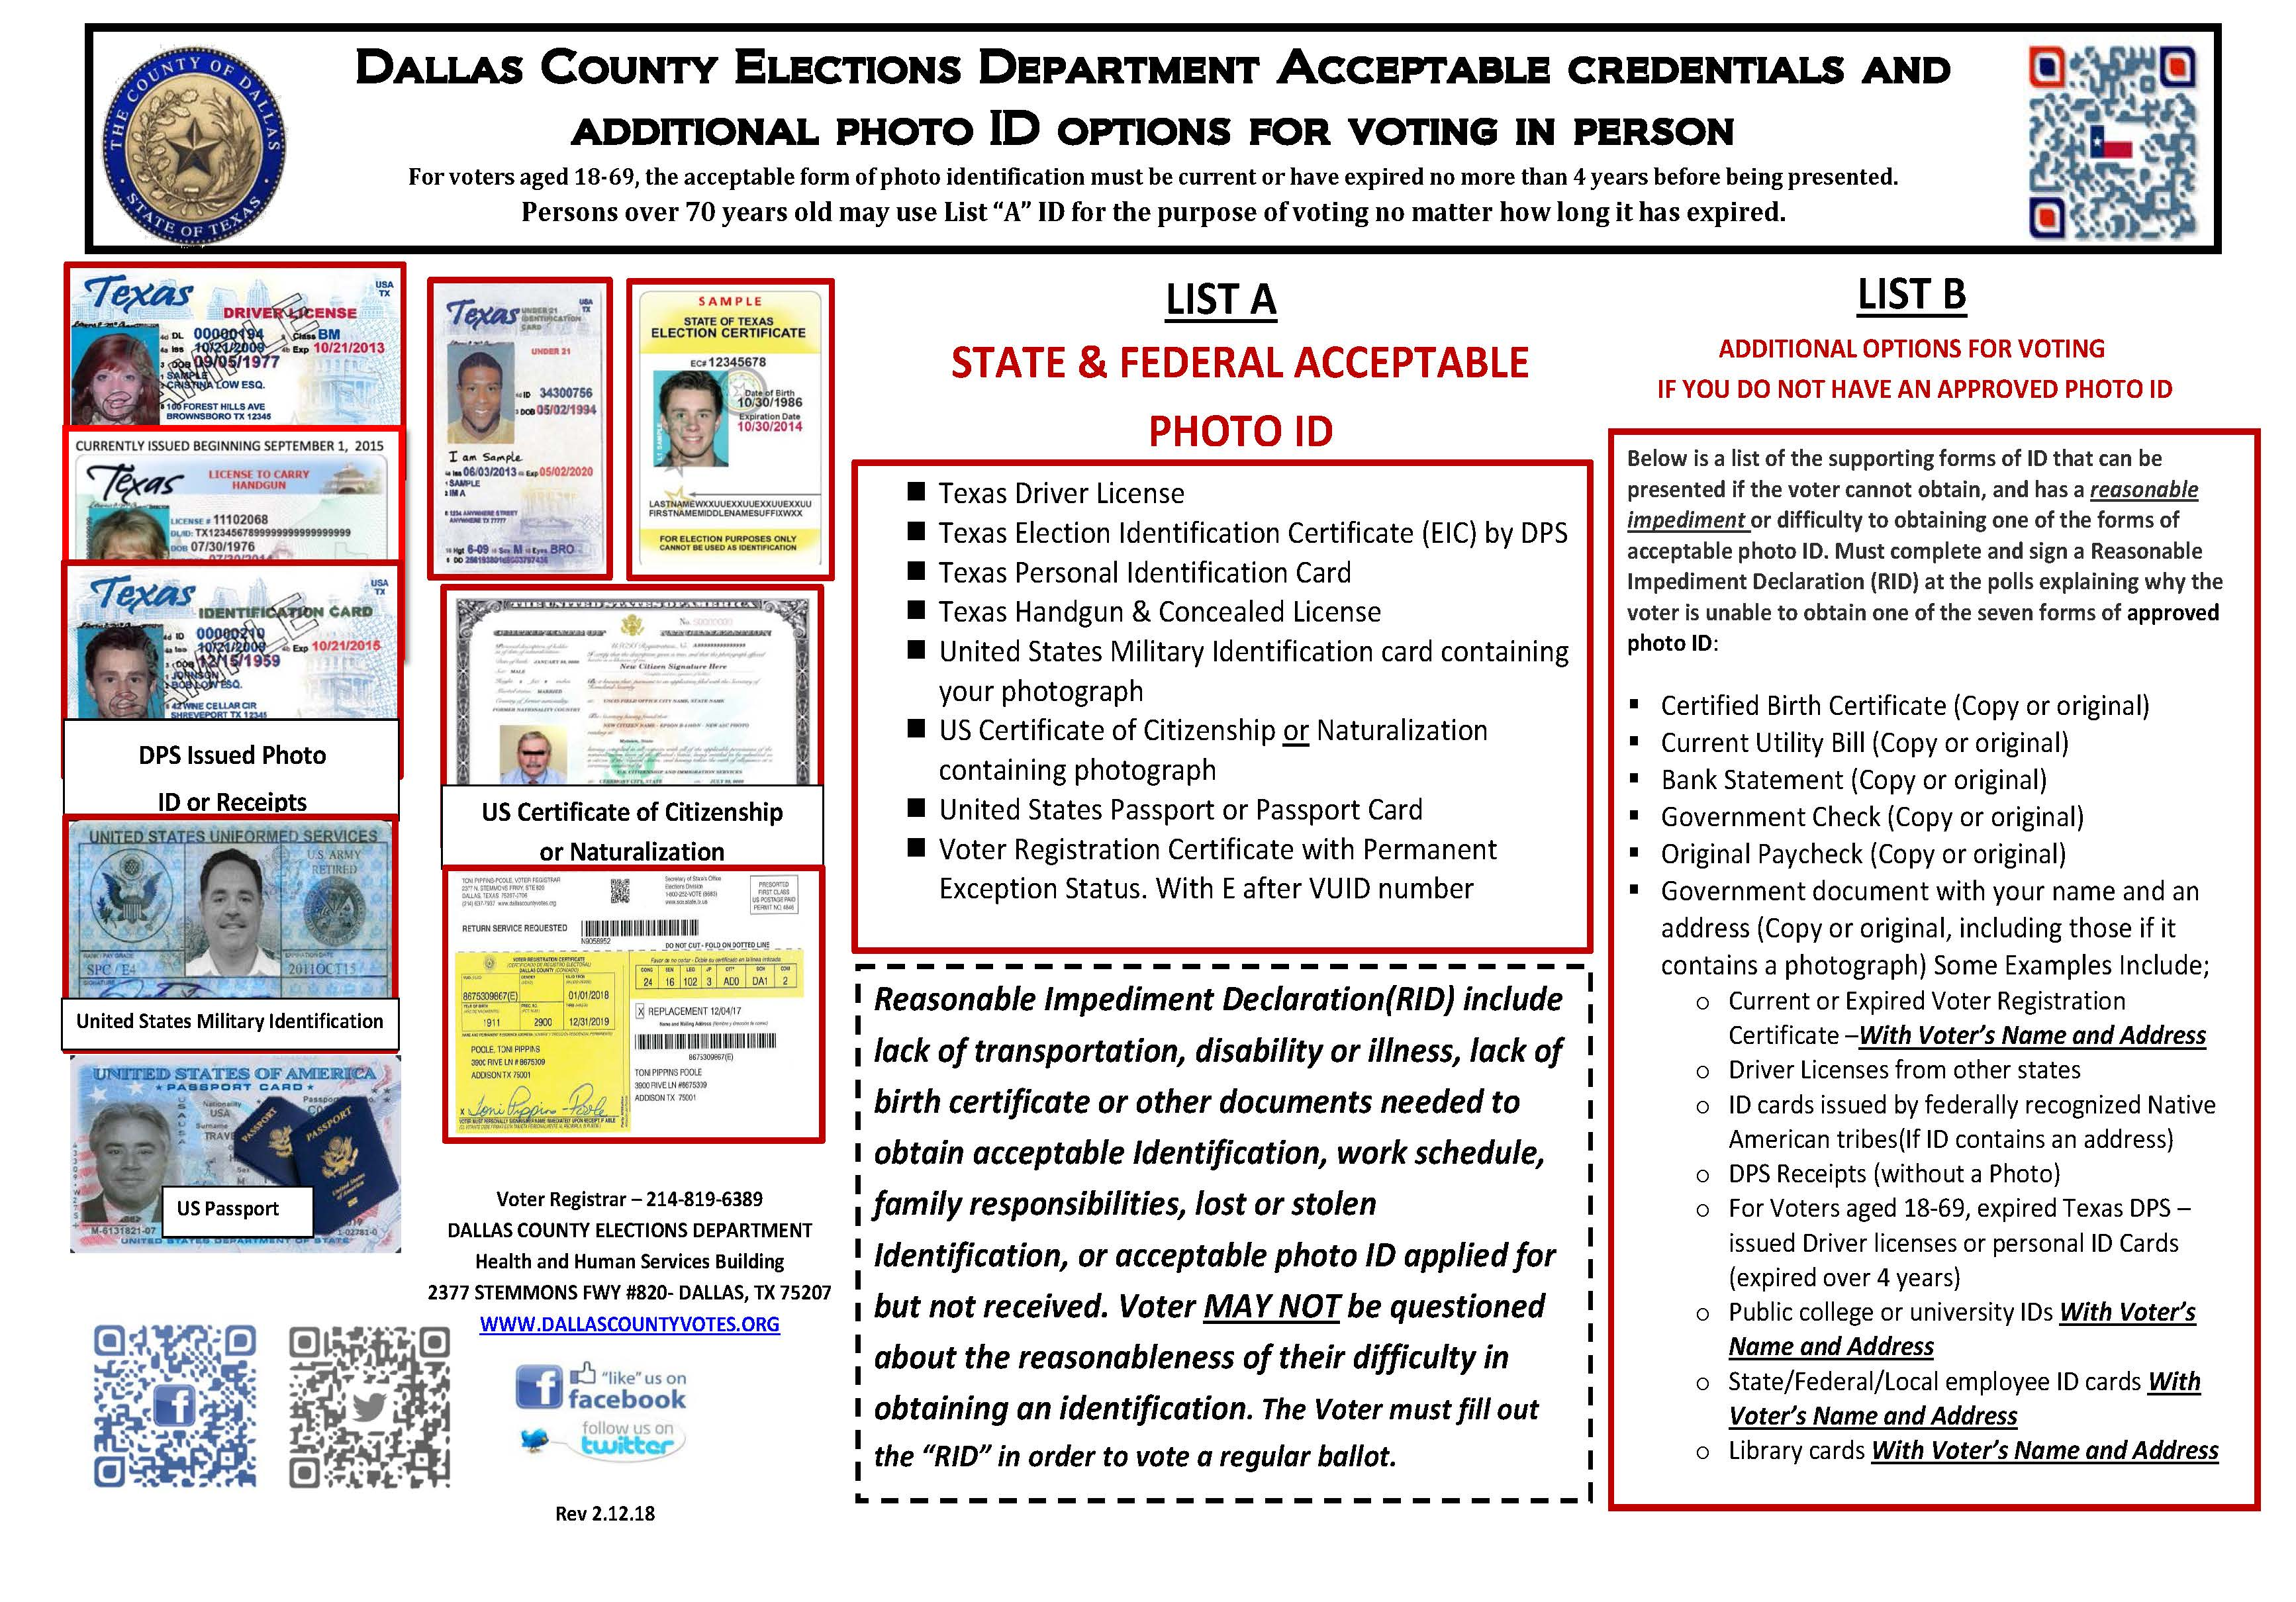 11x14 NEW VOTER ID 92016.pdf